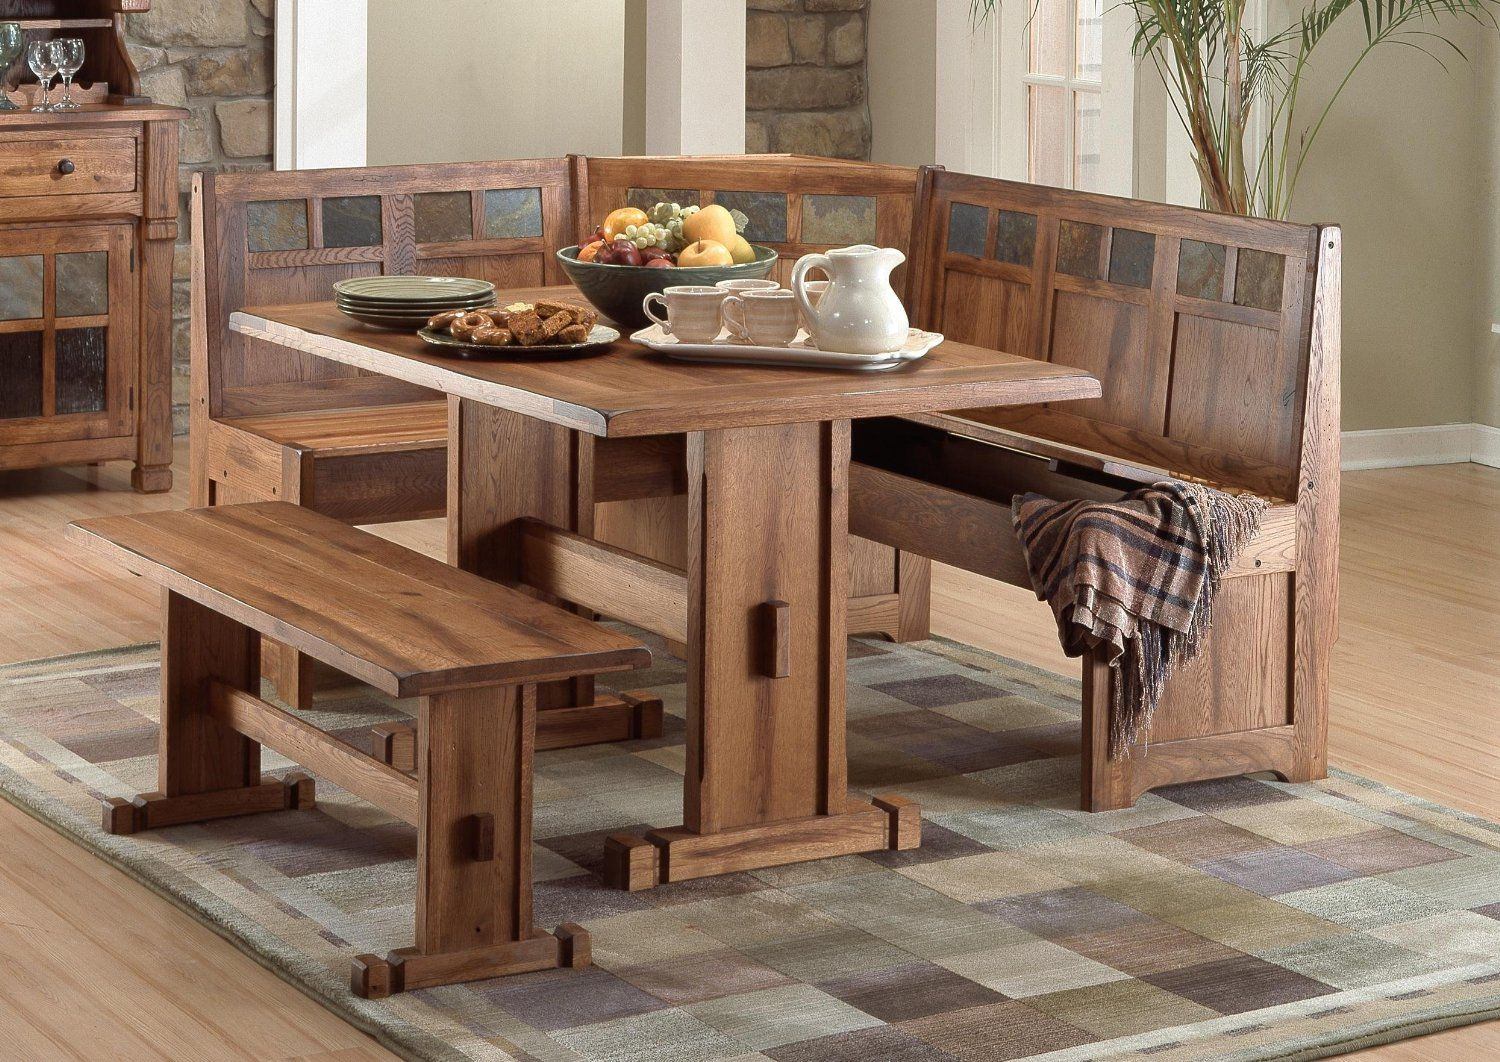 kitchen tables wooden kitchen table Riveting Kitchen Tables with Storage and Benches cup chair kitchentable